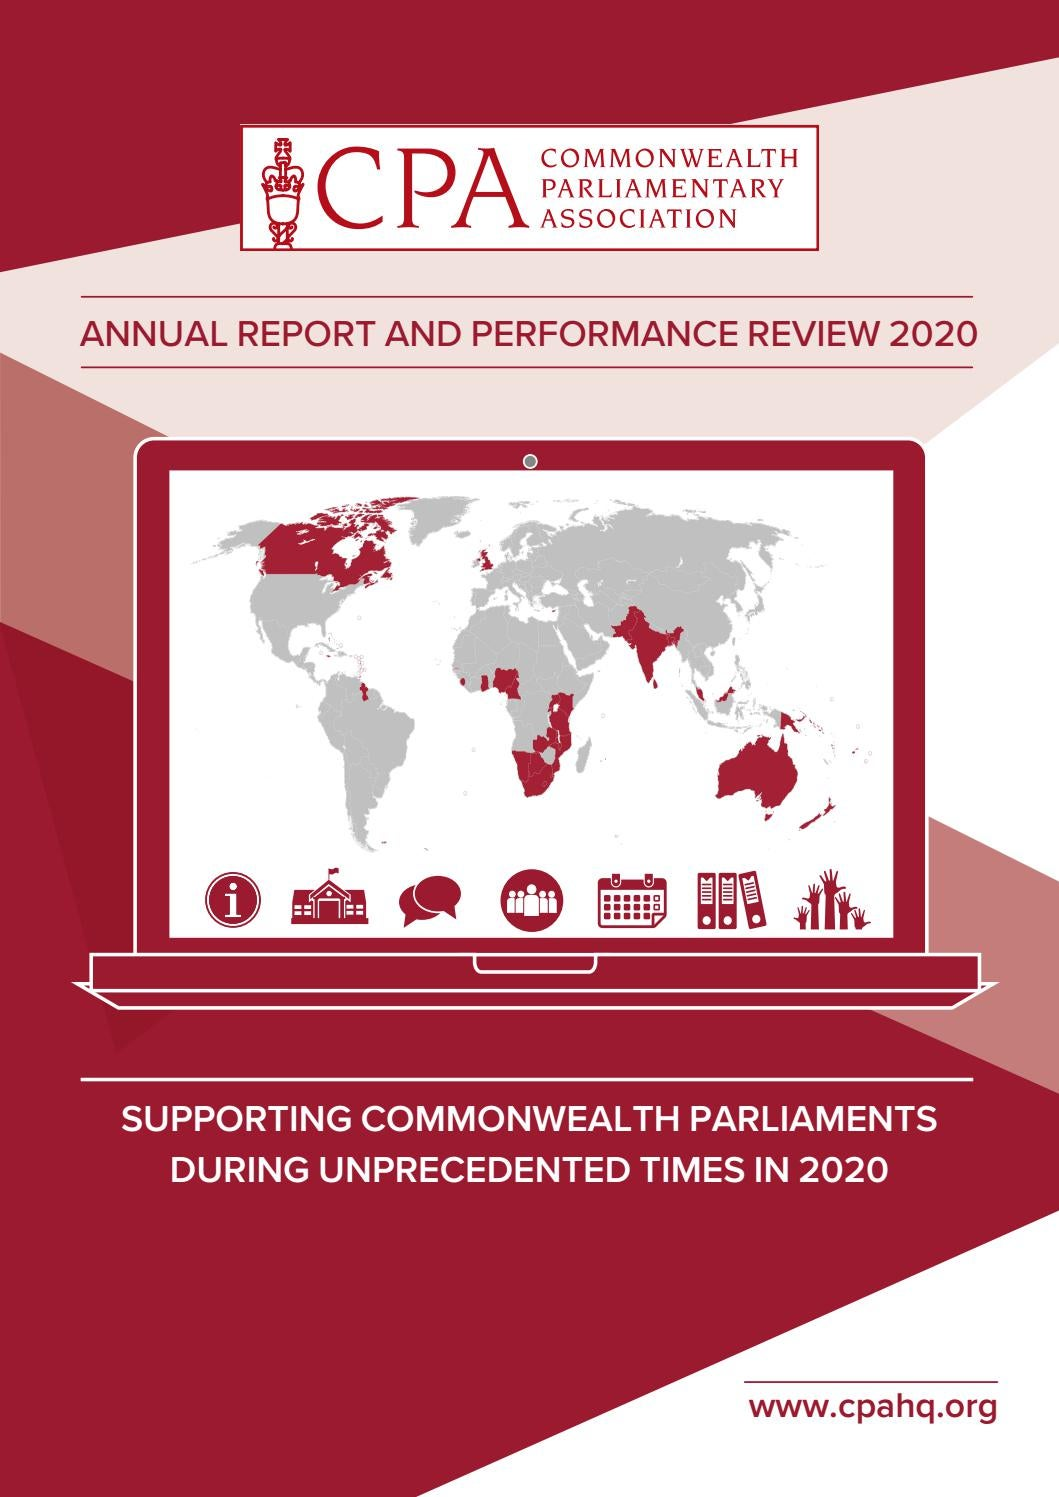 Cpa 2020 Annual Report And Performance Review By The Parliamentarian Issuu